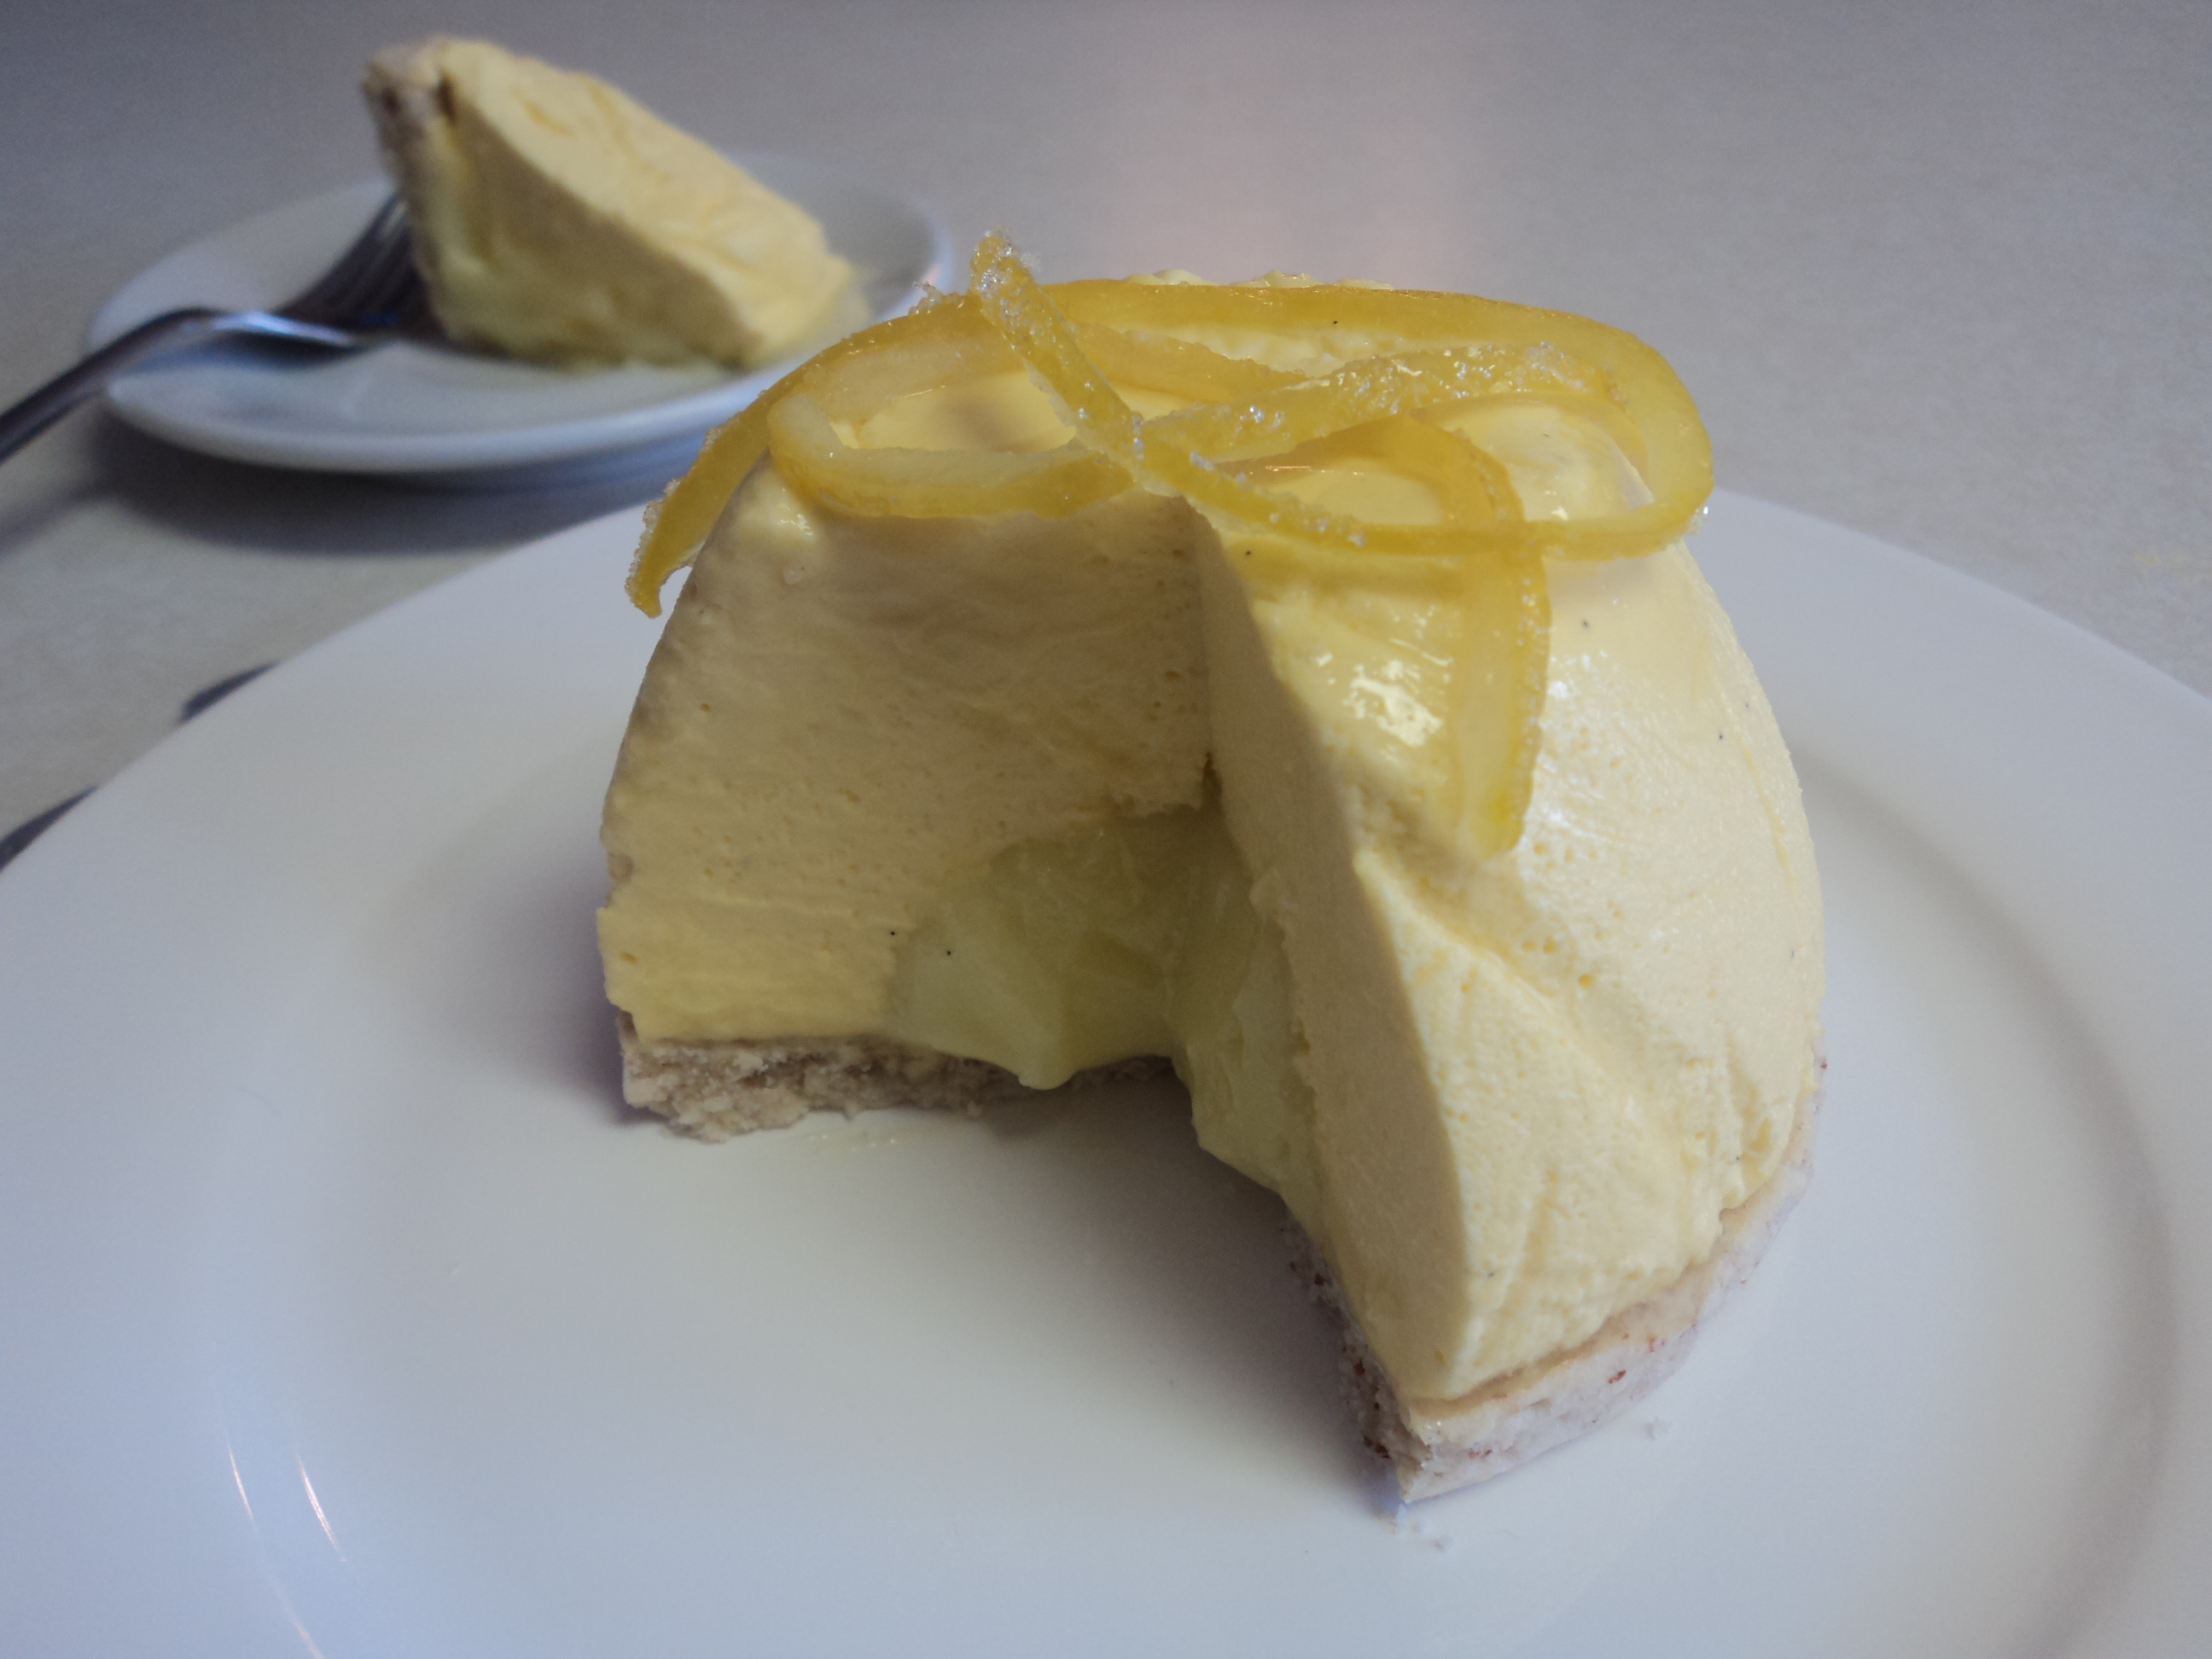 SCENTED LEMON-VANILLA BEAN MOUSSE